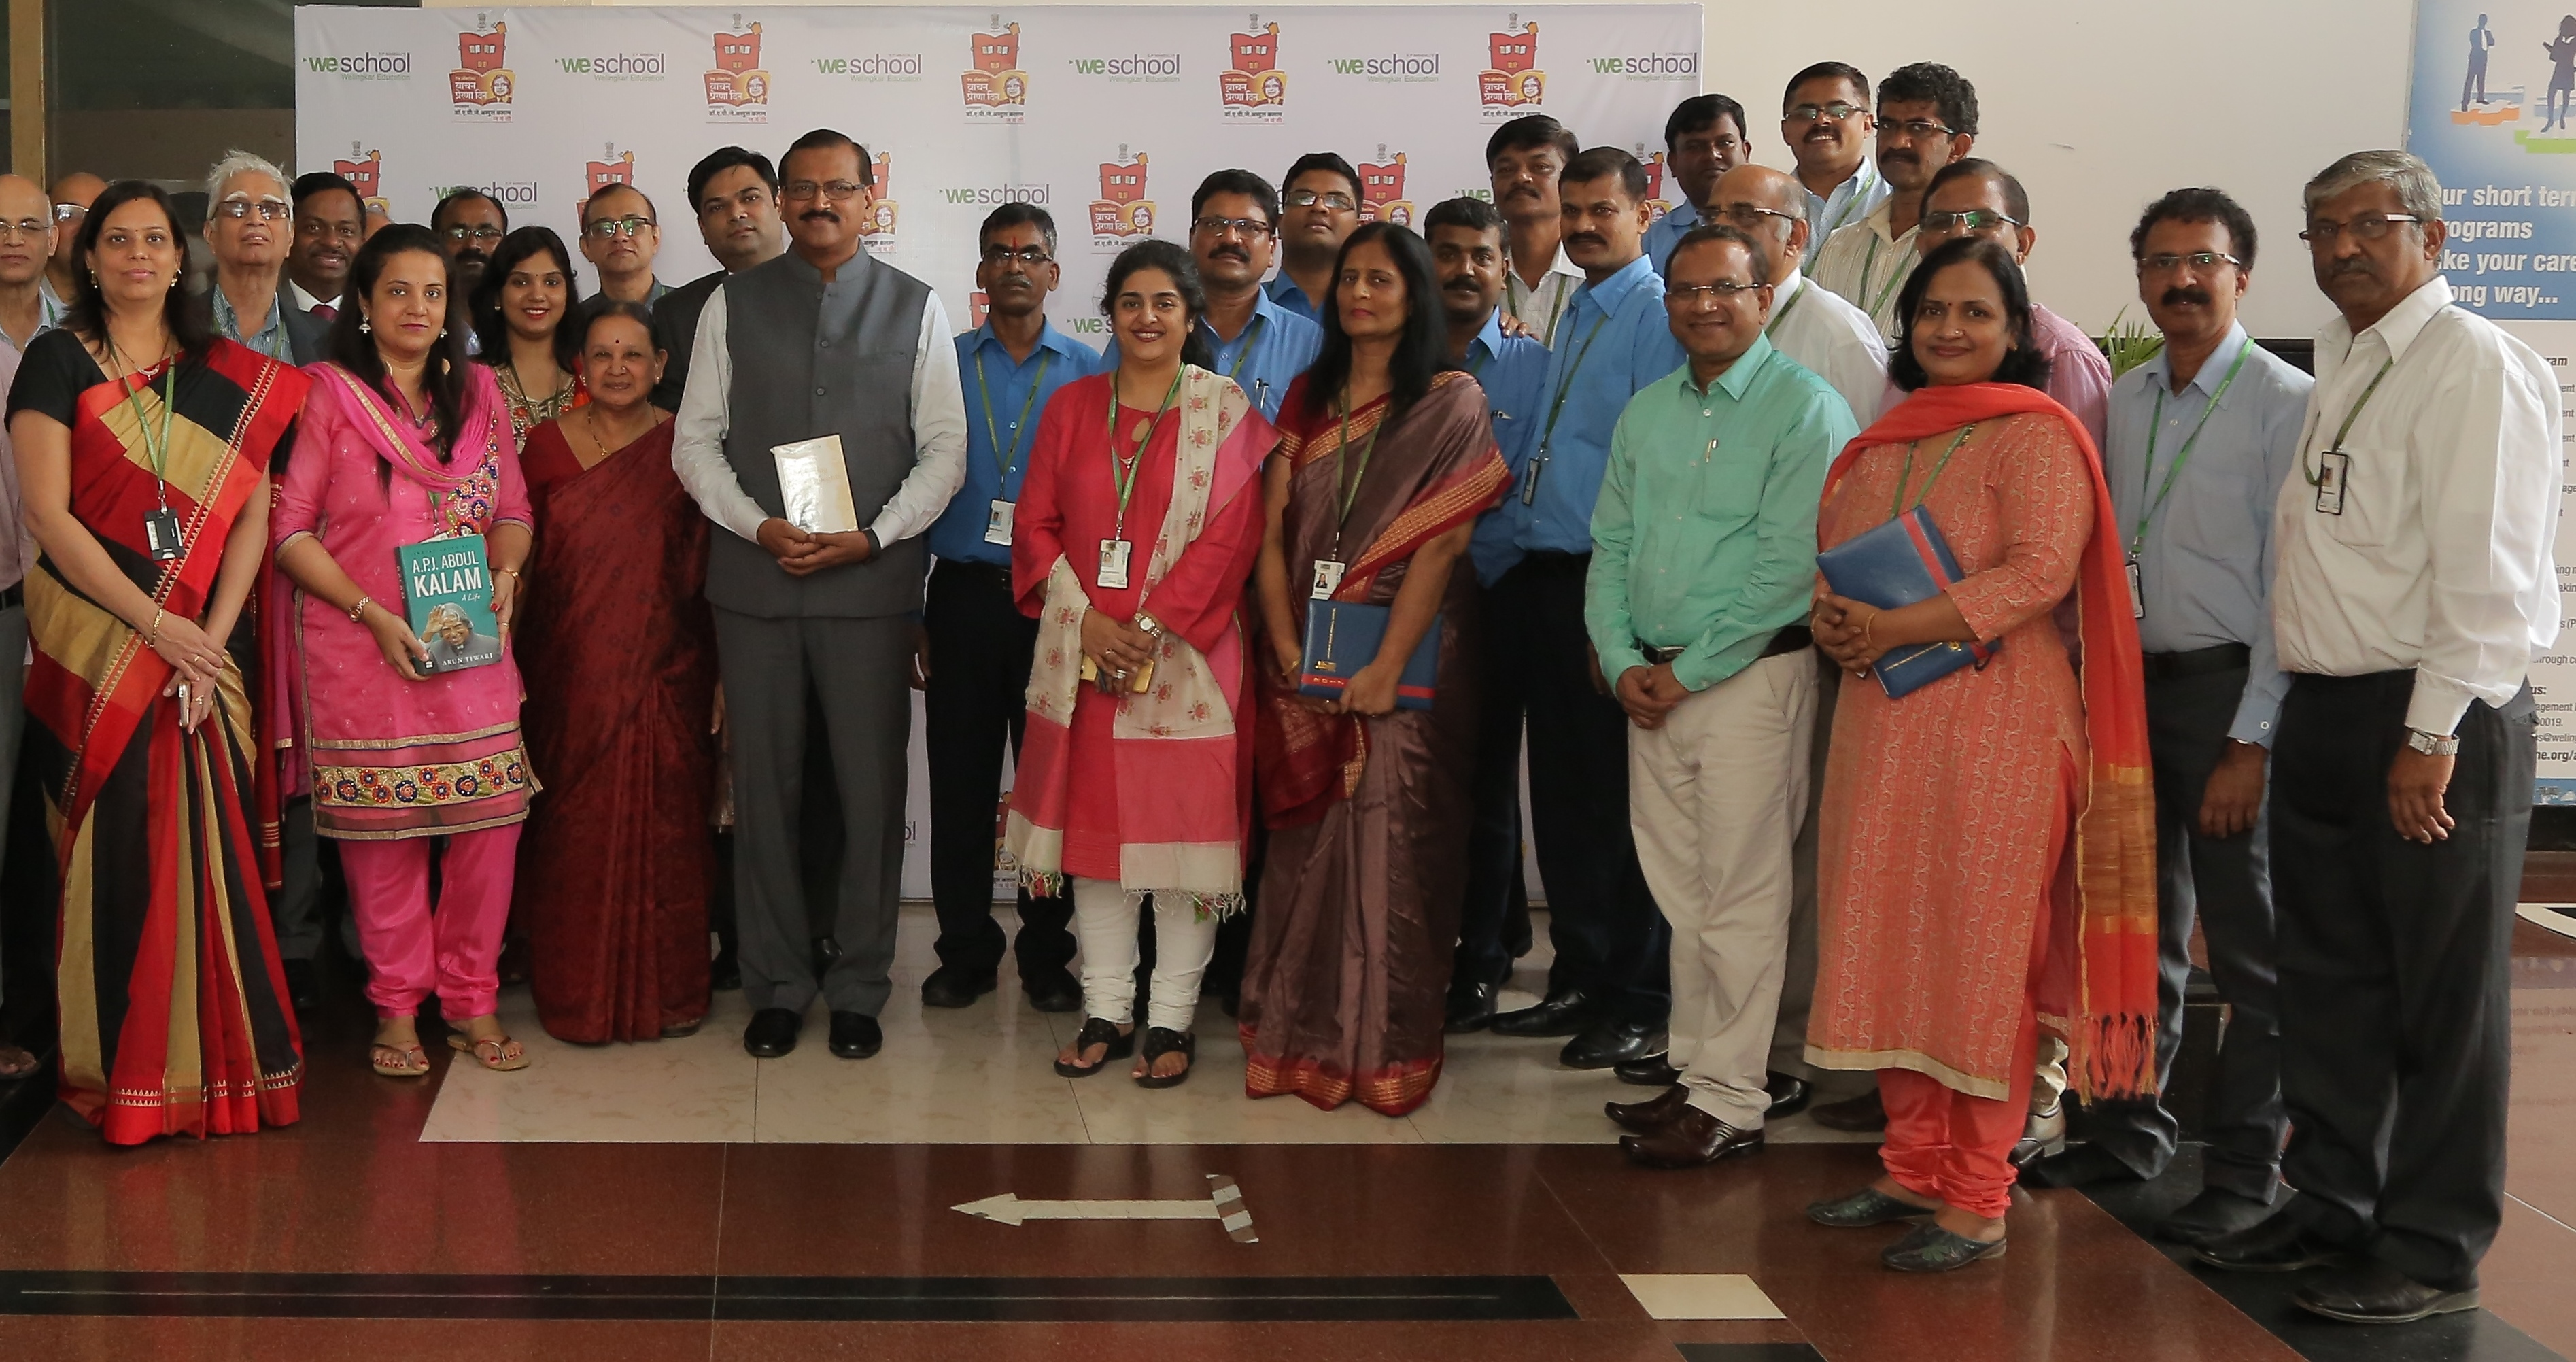 Prof. Dr Uday Salunkhe, Group Director, WeSchool along with faculty ,staff and students at book exhibition on Vaachan Prerana Din to commemorate birth anniversary of legendary Dr A.P.J. Abdul Kalam, former President of India